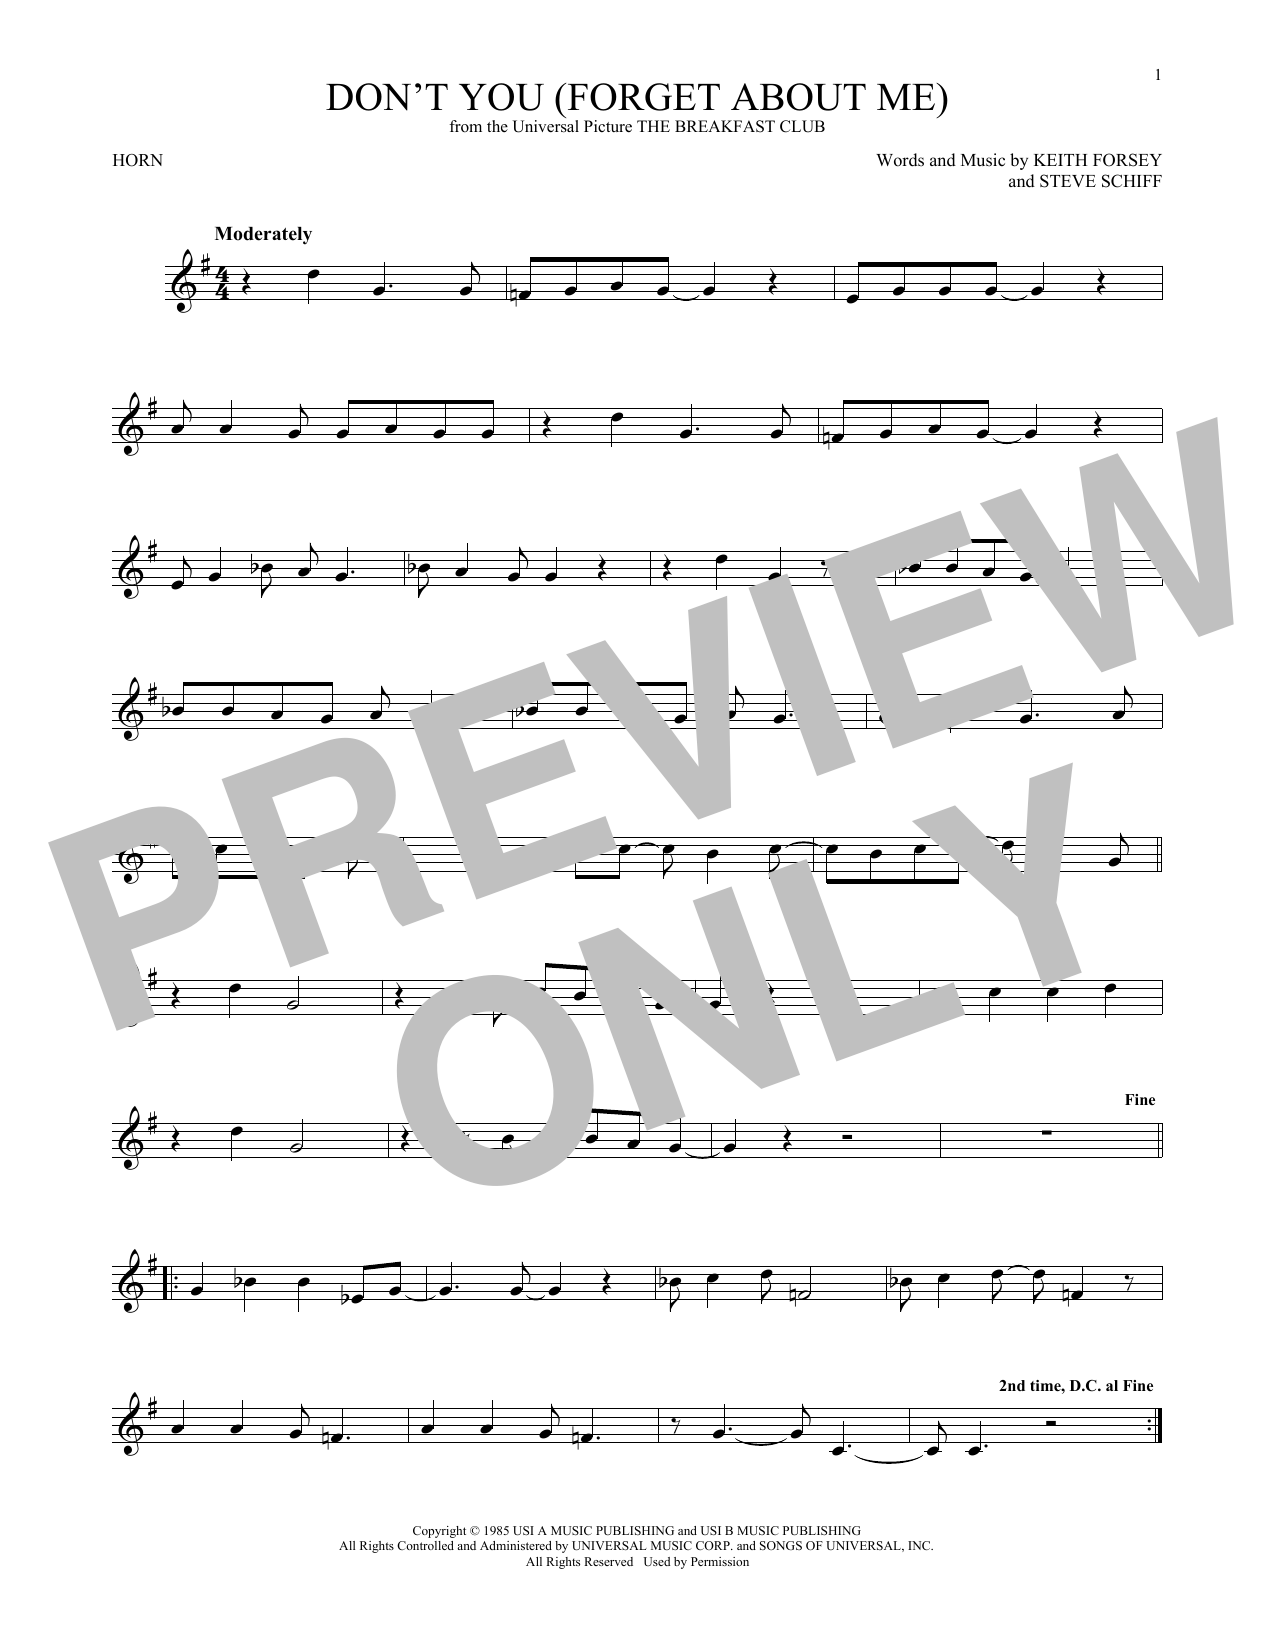 Don't You (Forget About Me) (French Horn Solo)